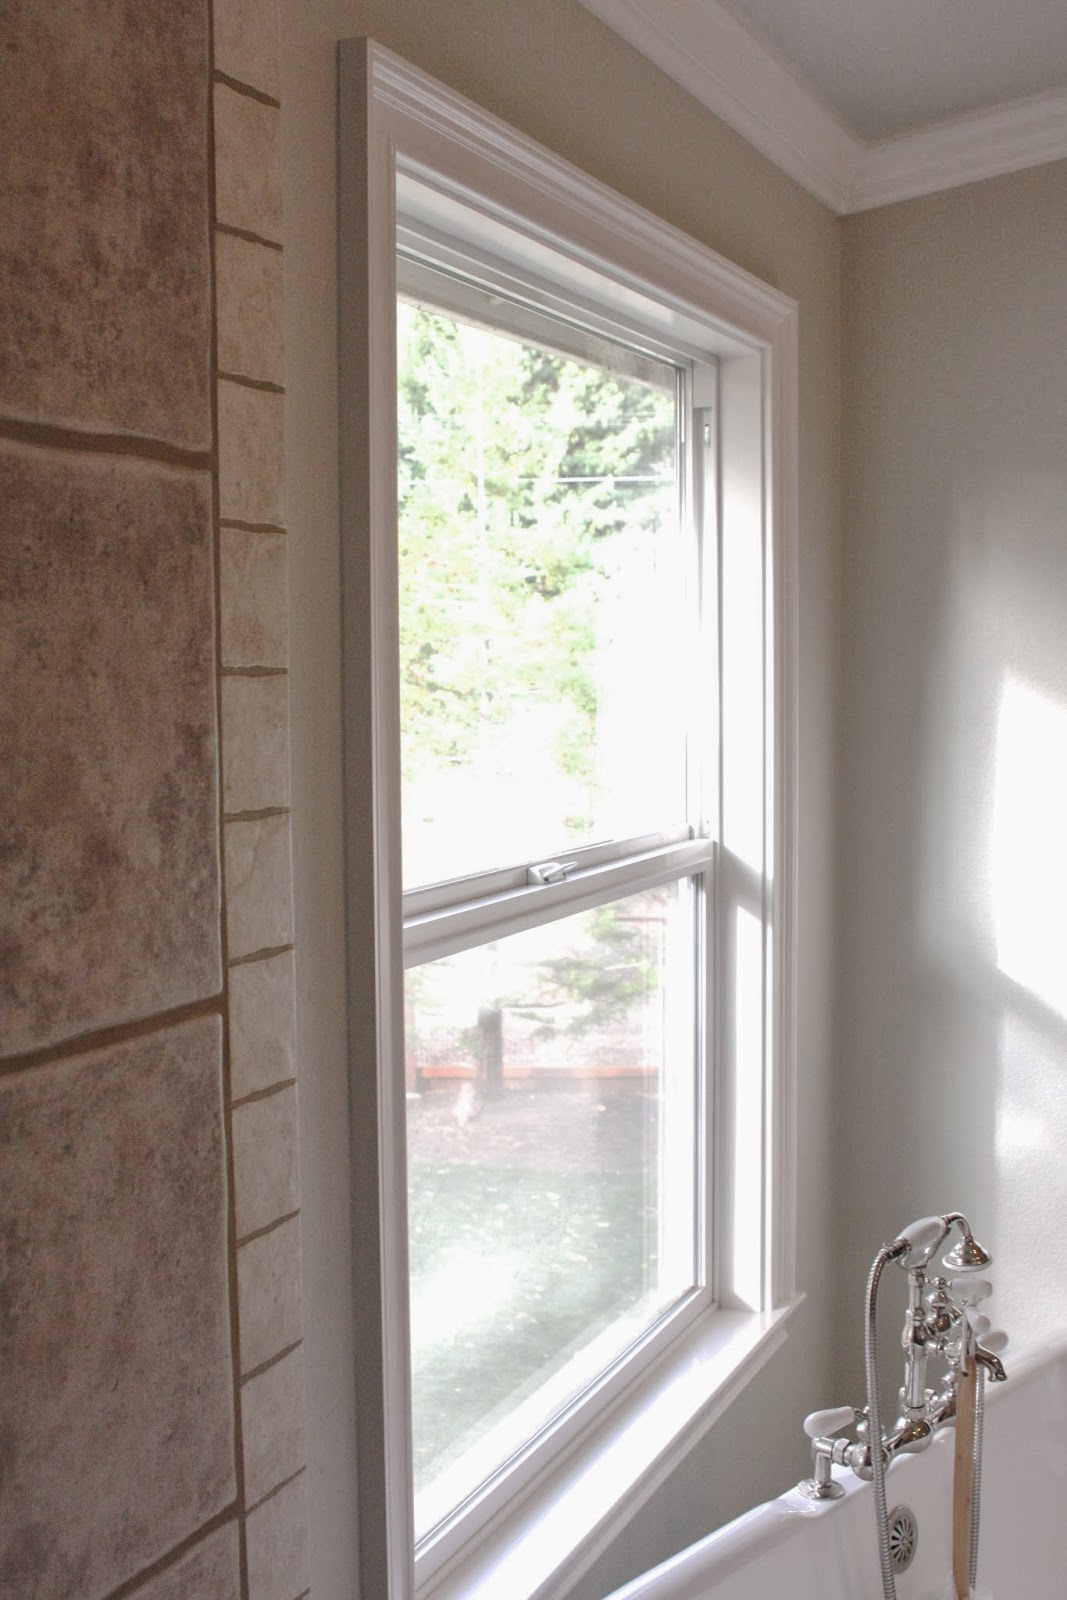 The Previous Owners Had Thin, White Sheers Hanging As A Window Covering. I  Took The Sheers Down During The Painting Process And Didnu0027t Put Them Back  Because ...